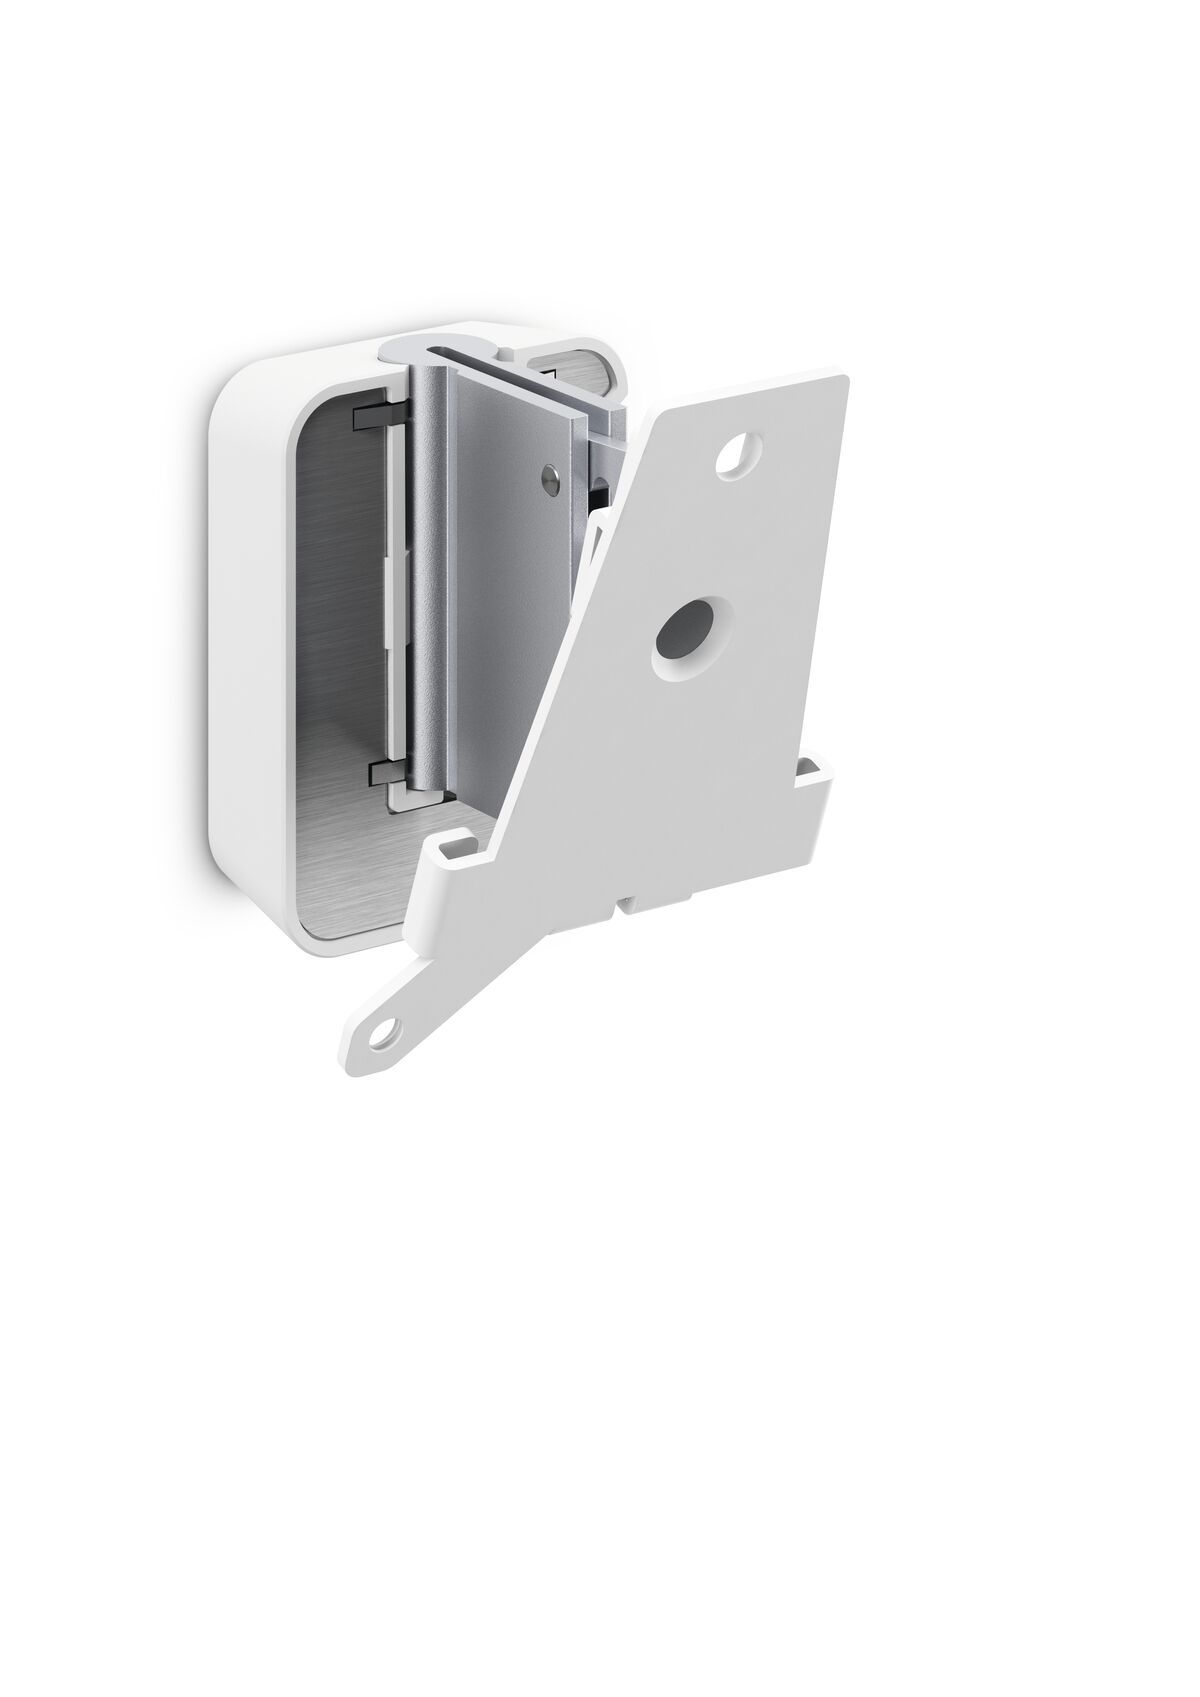 Vogel's SOUND 5203 Speaker Wall Mount for Denon HEOS 3 (white) - Product